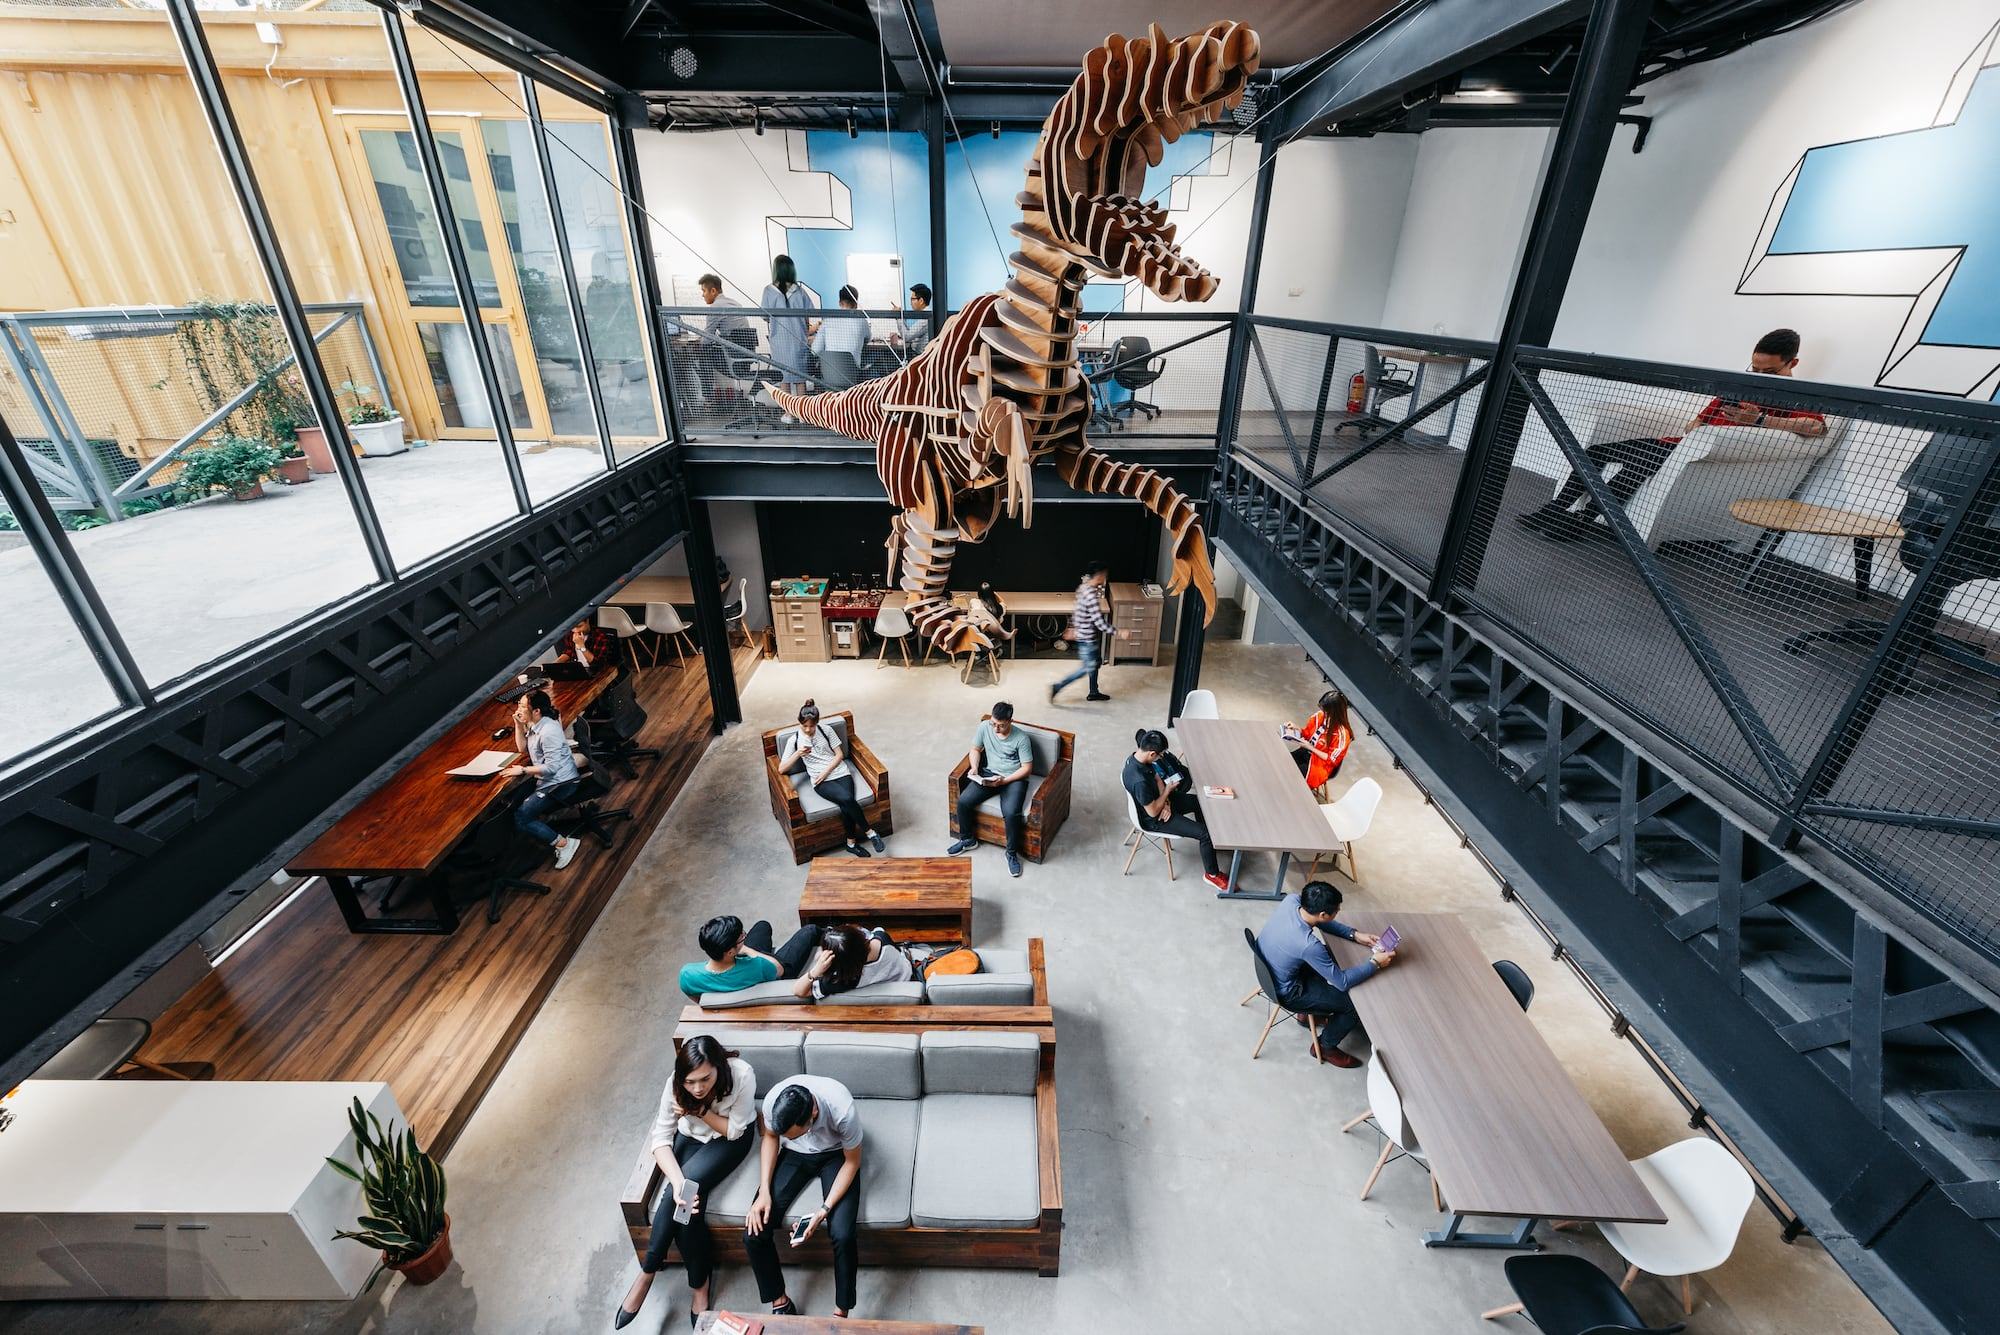 Coworking Spaces In Hanoi: Five Shared Places To Work